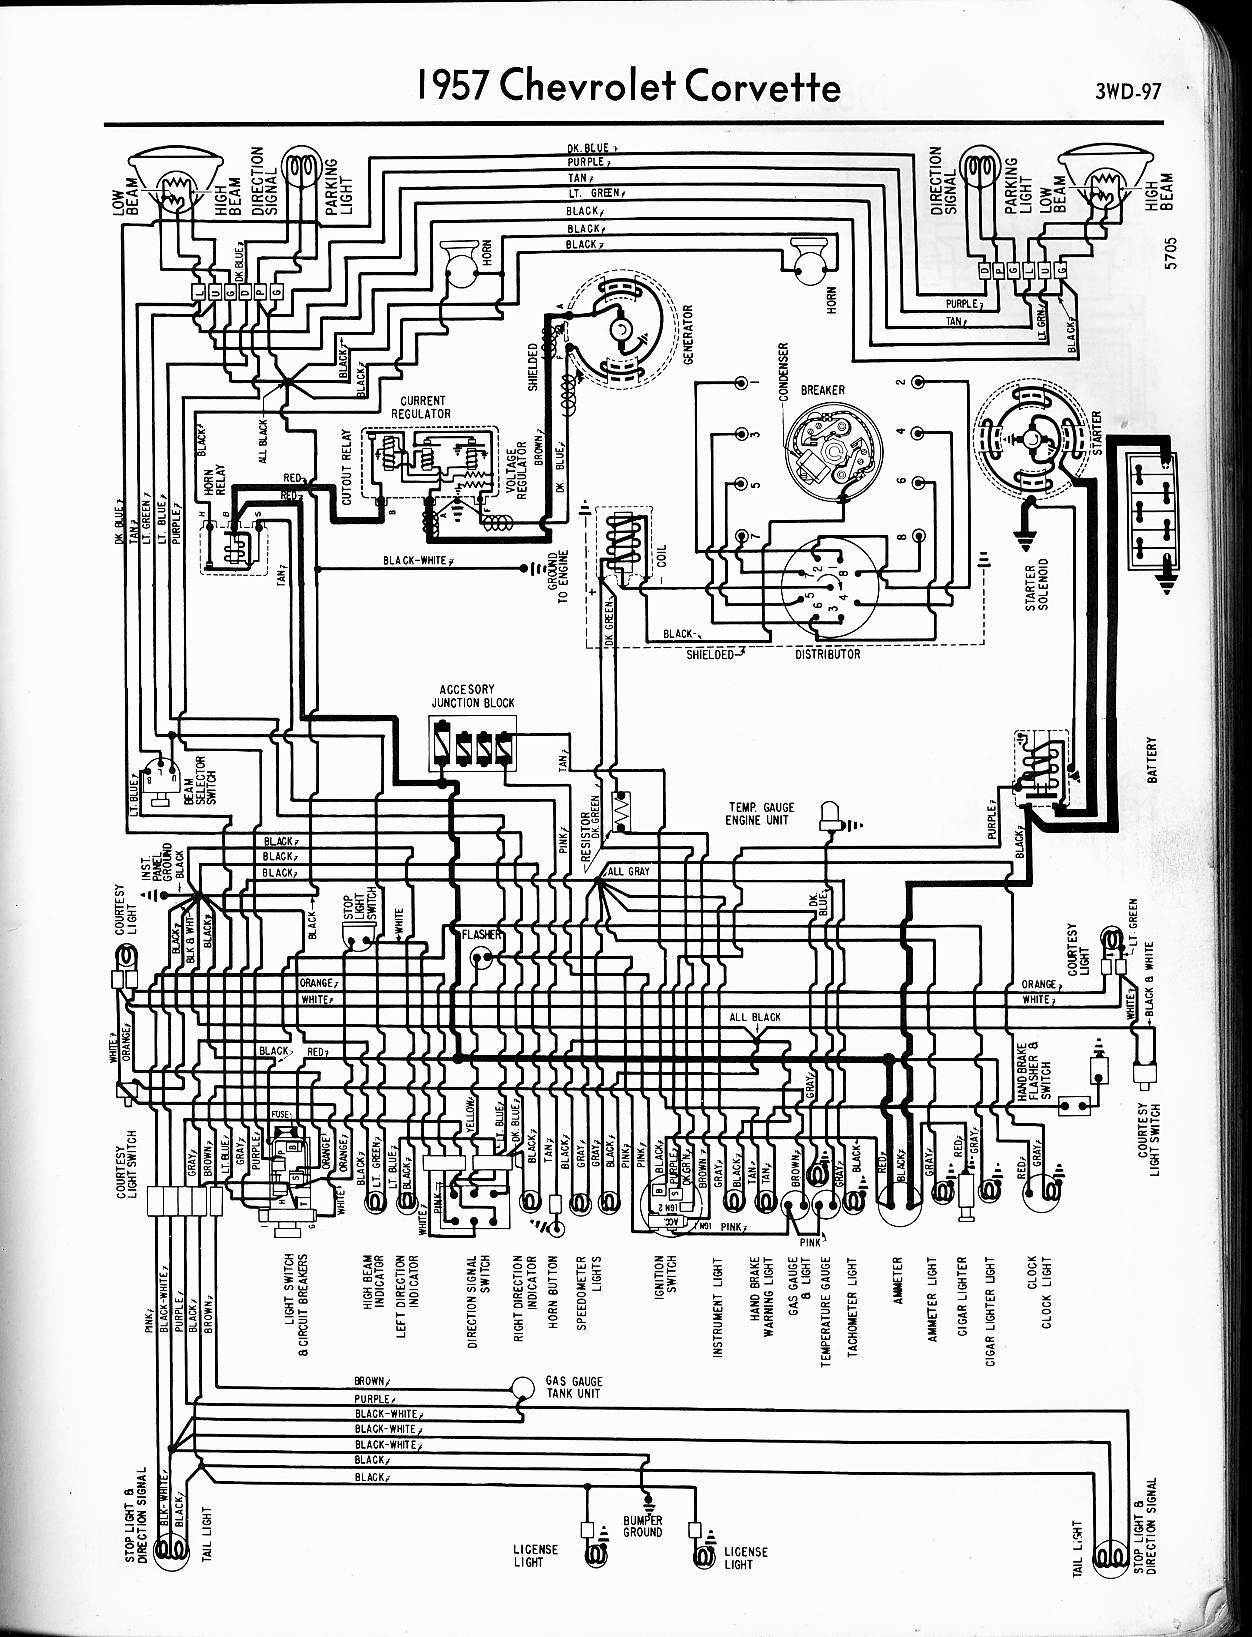 57 65 chevy wiring diagrams 1957 chevy wiring diagram at 57 Chevy Wiring Diagram